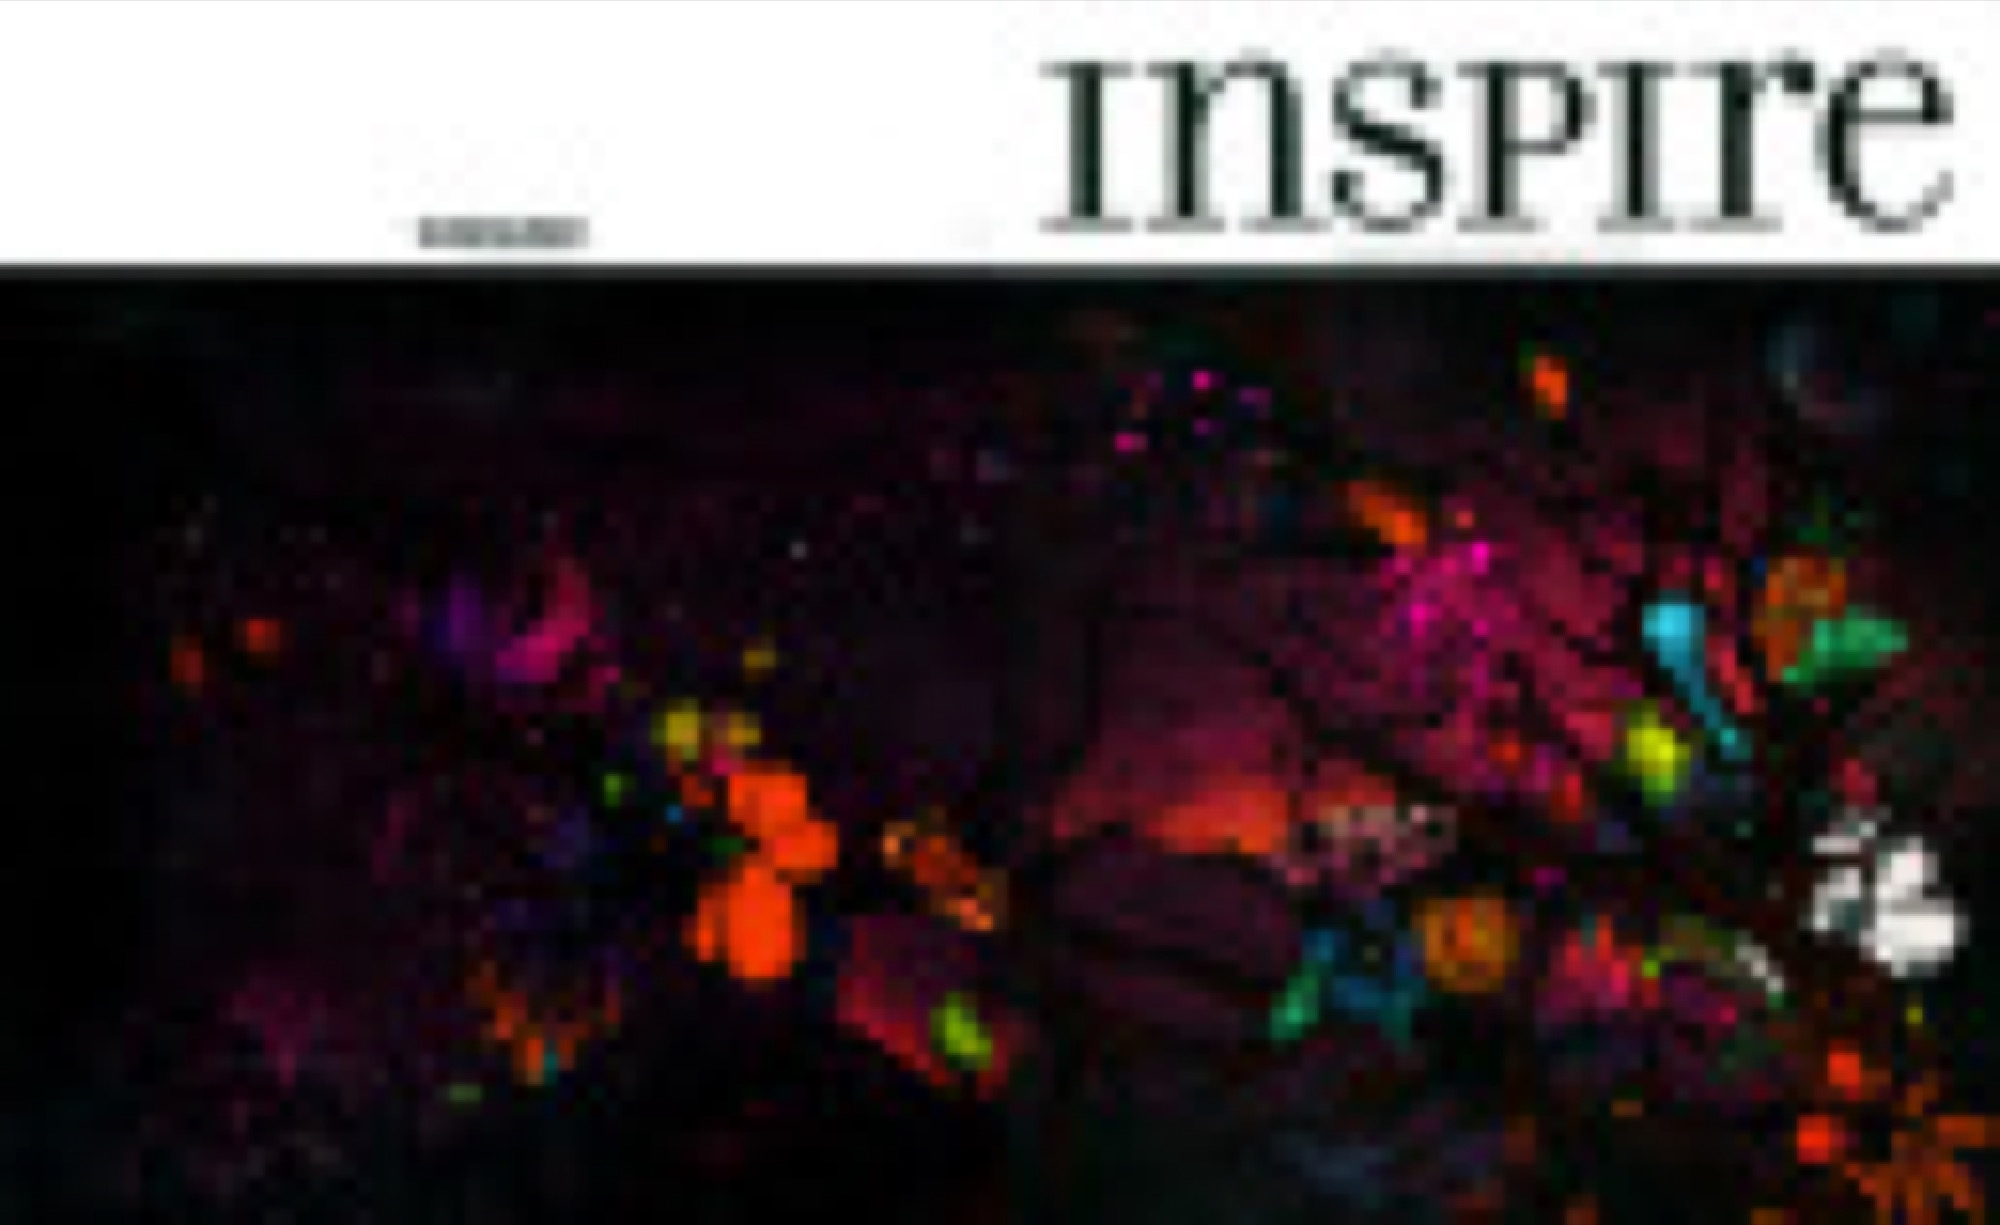 Inspire Magazine